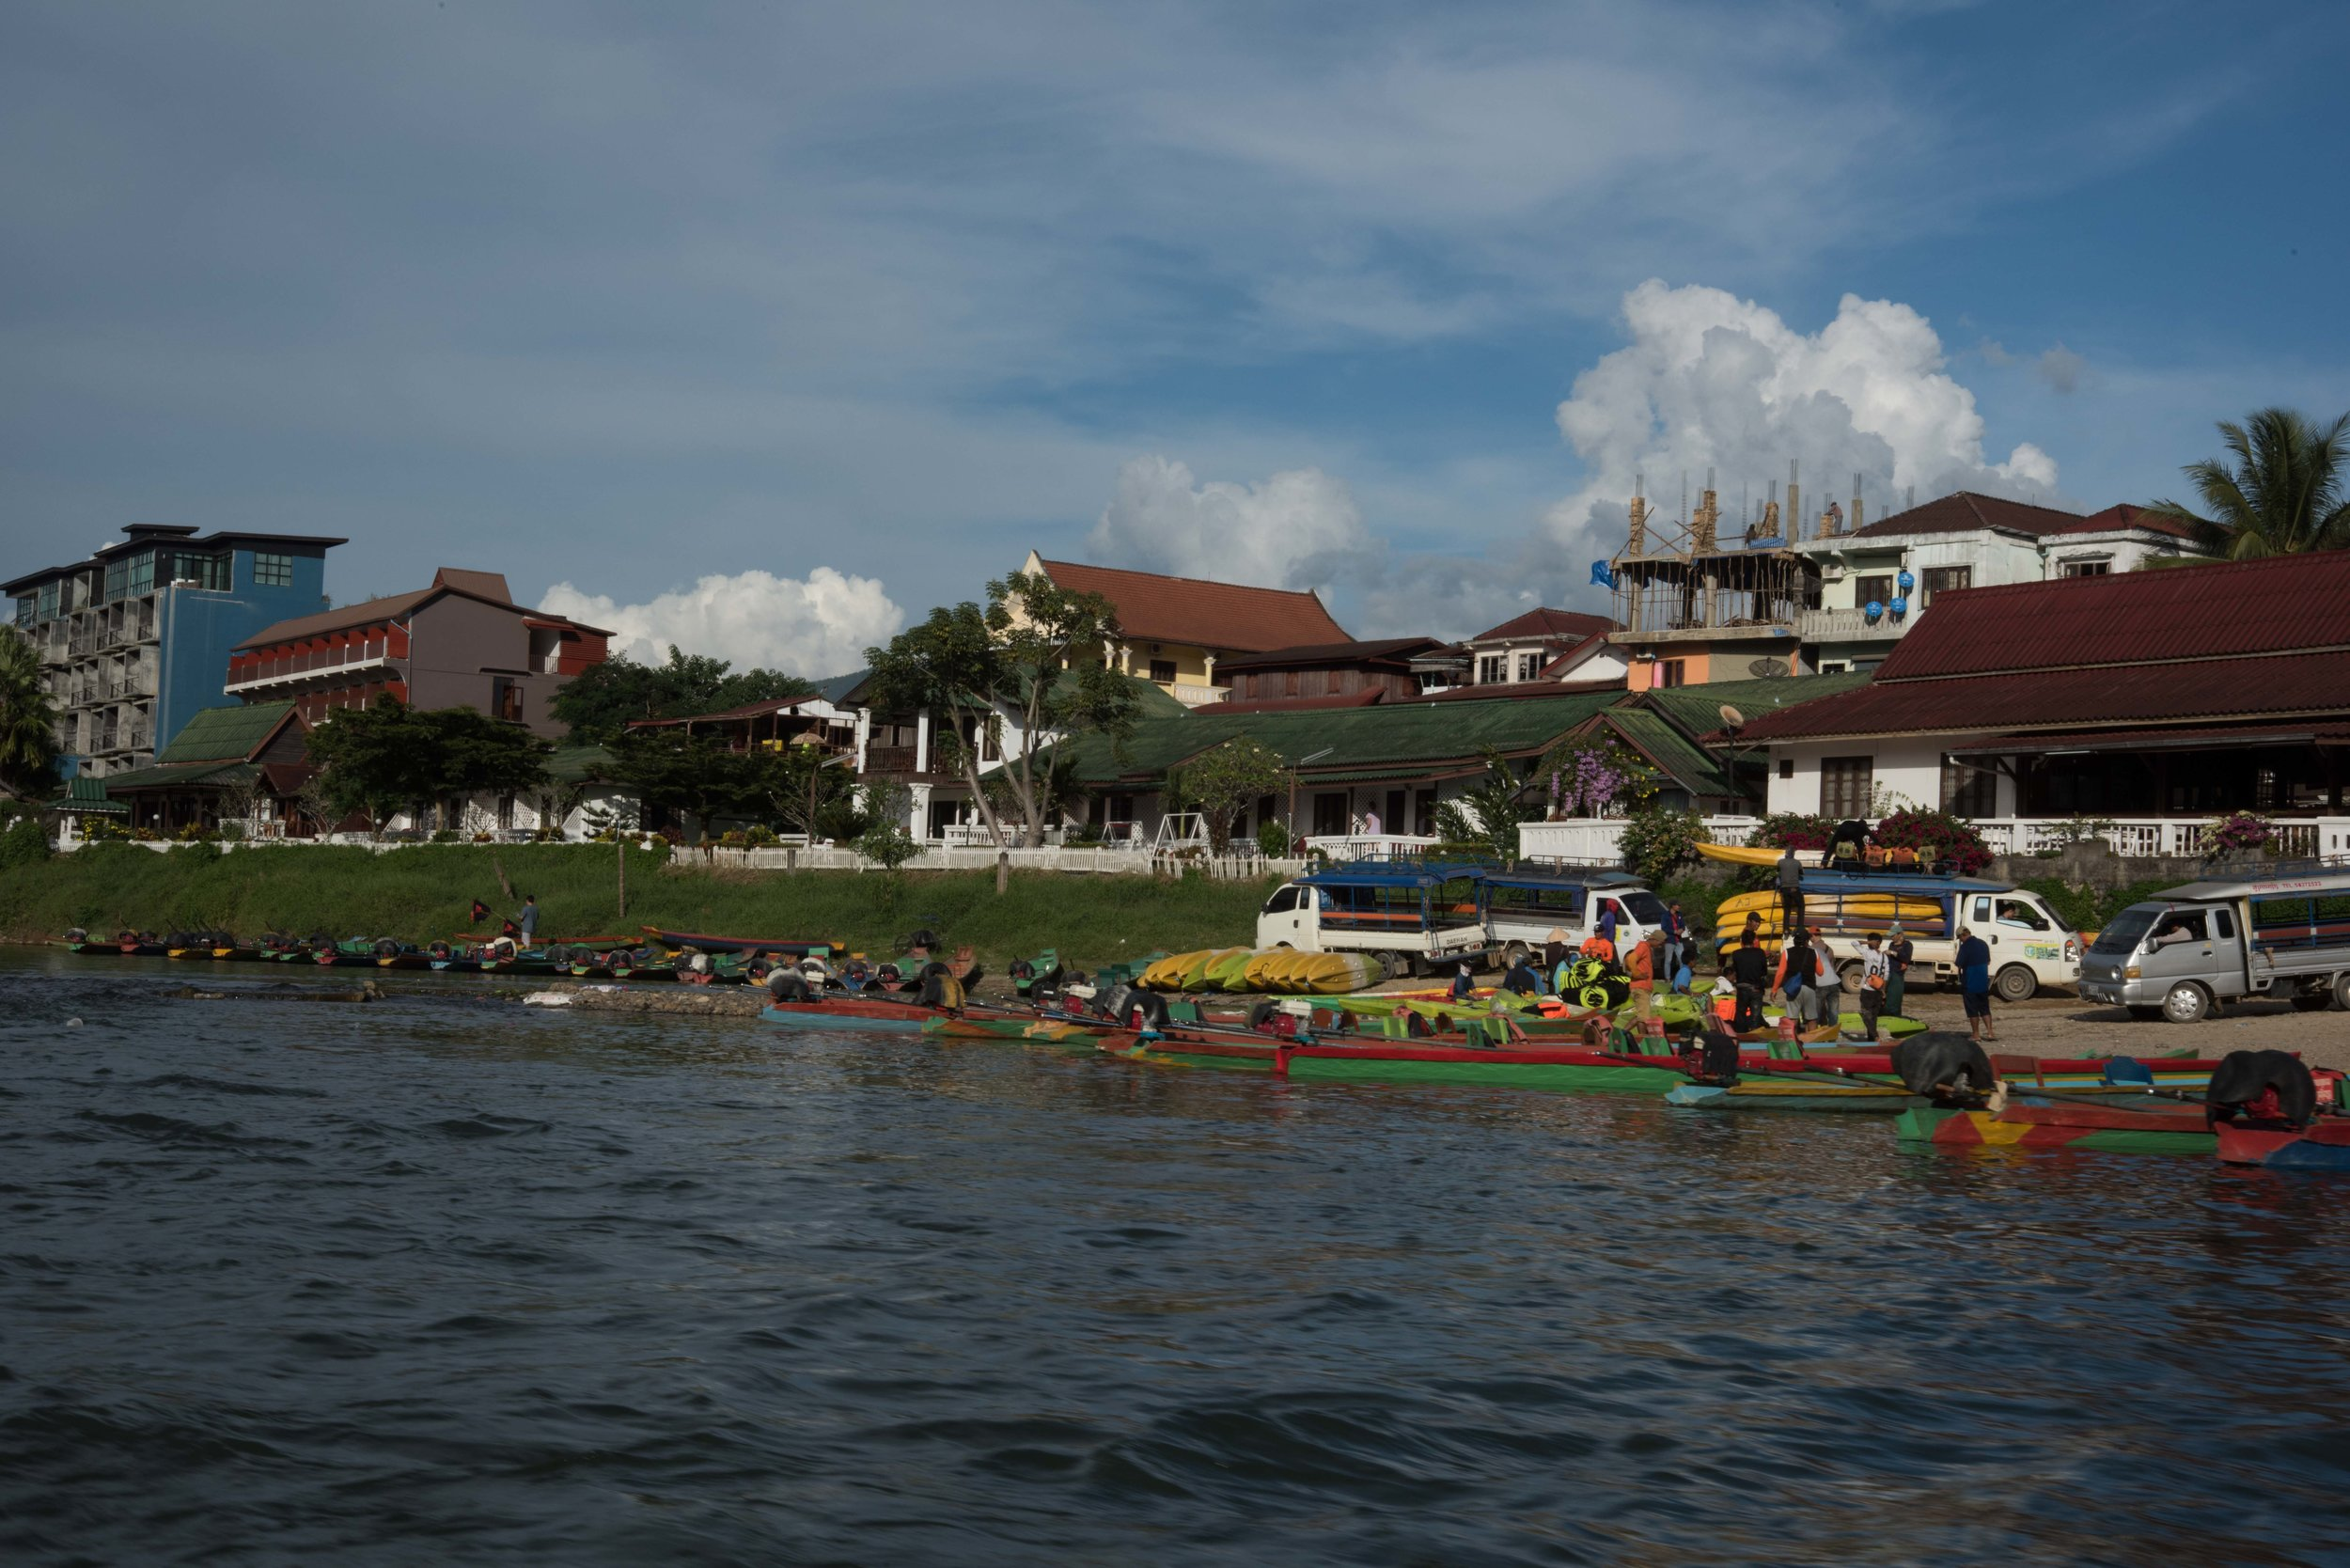 River cruise, Vang Vieng, Laos, 29 Nov 2017-2.jpg